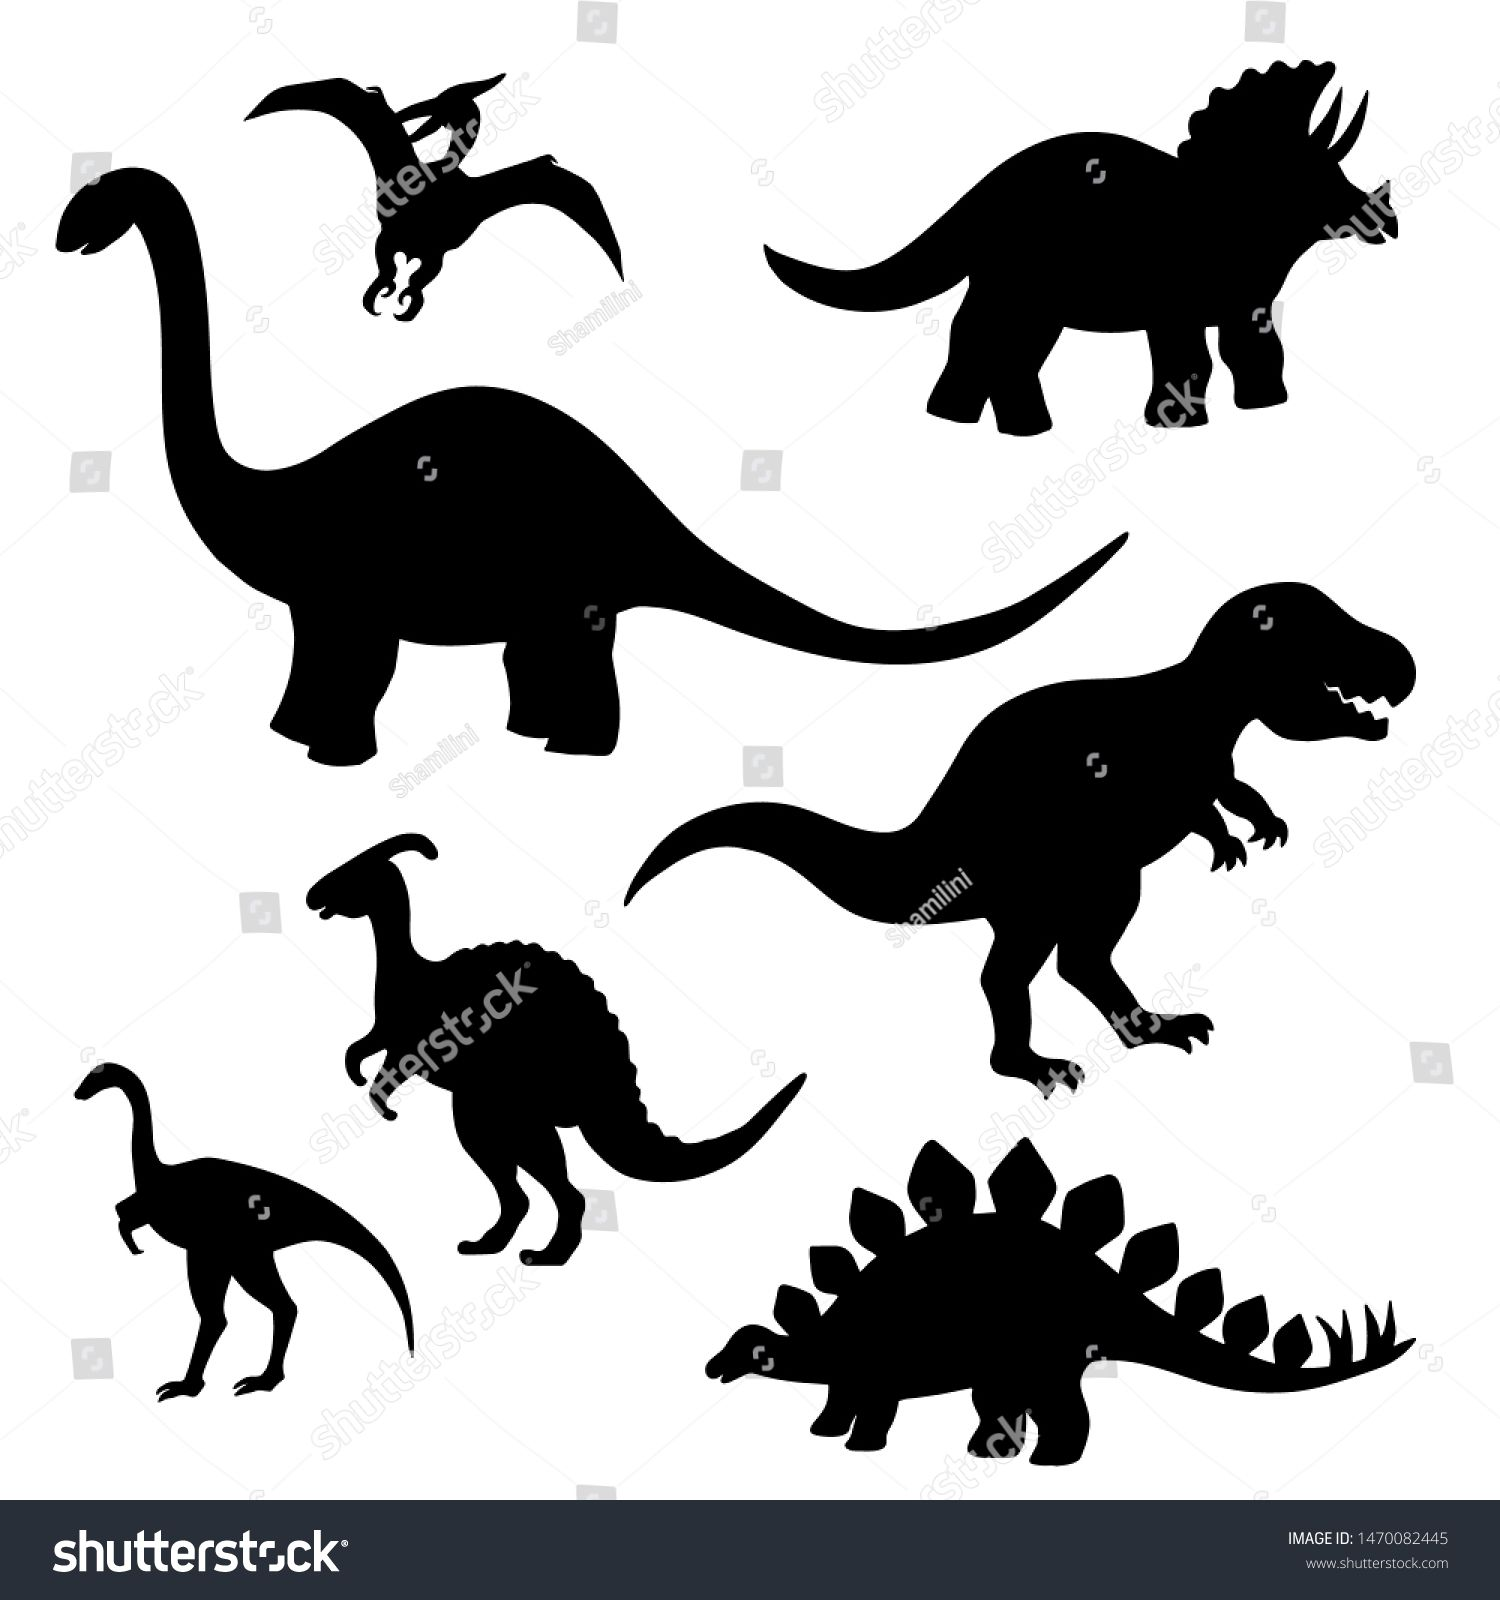 Set Of Black Silhouettes Of Dinosaurs On A White Background Stegosaurus Triceratops Tyrannosaurus Br Dinosaur Silhouette Animal Silhouette Black Silhouette